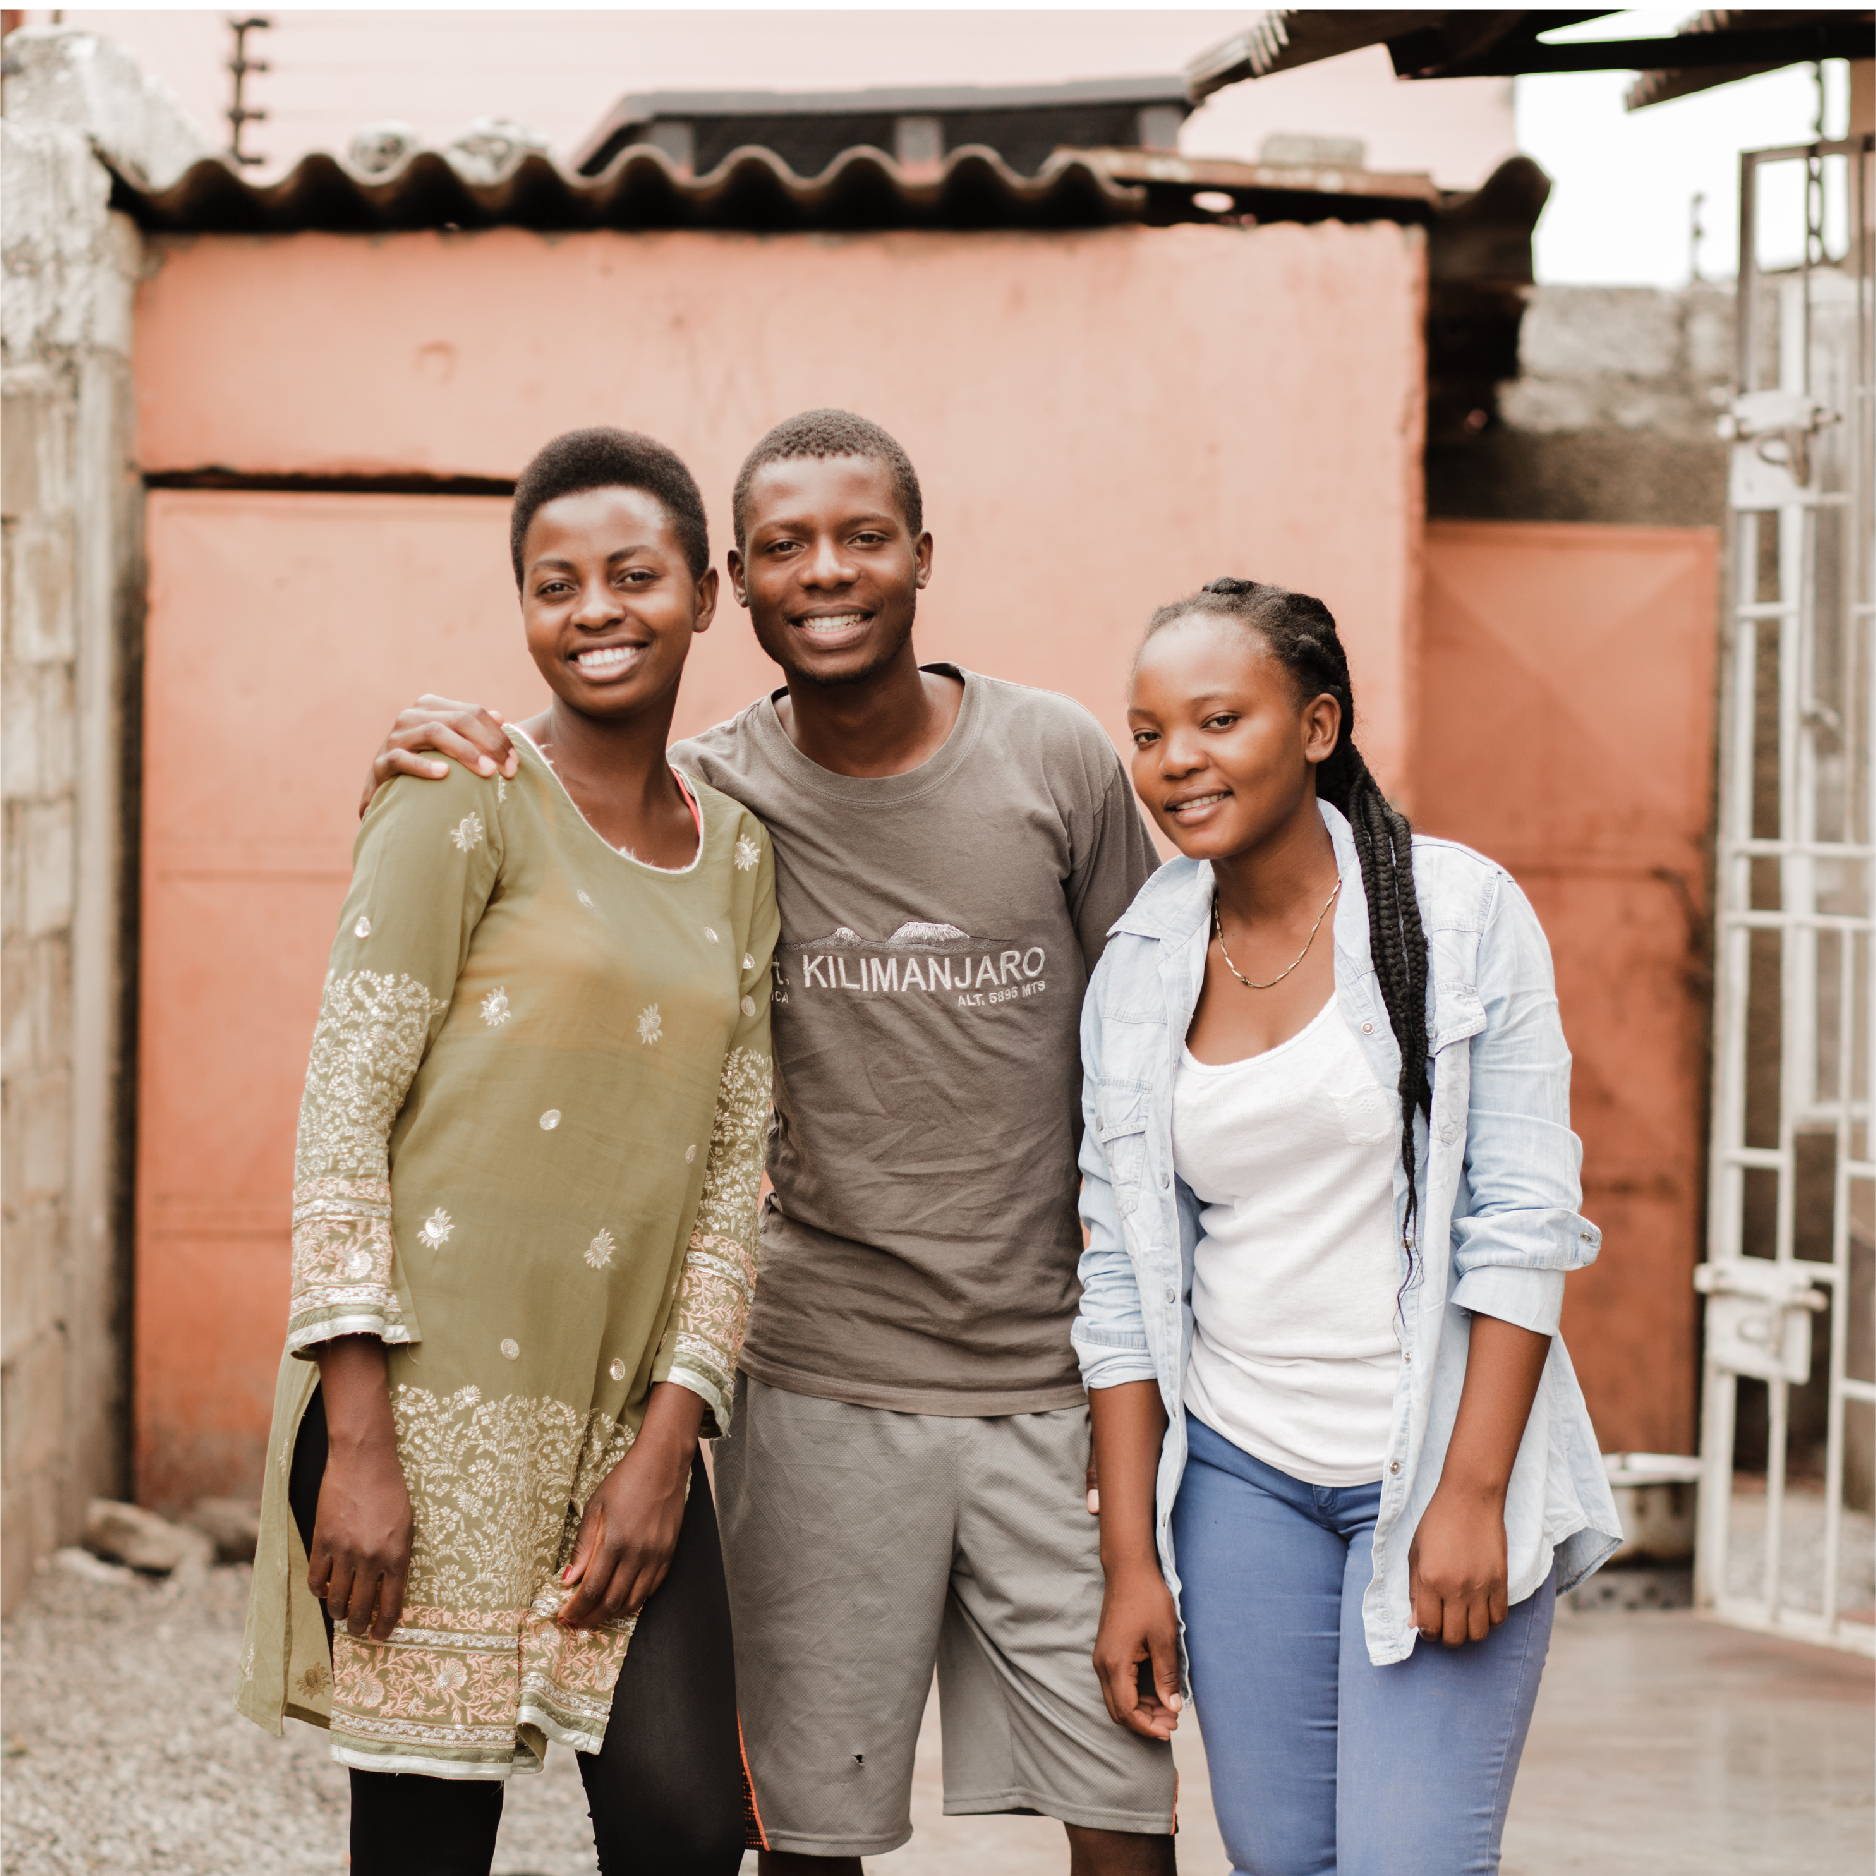 three young adults in Zambia (two girls and a guy) pose with their arms around each other and smile